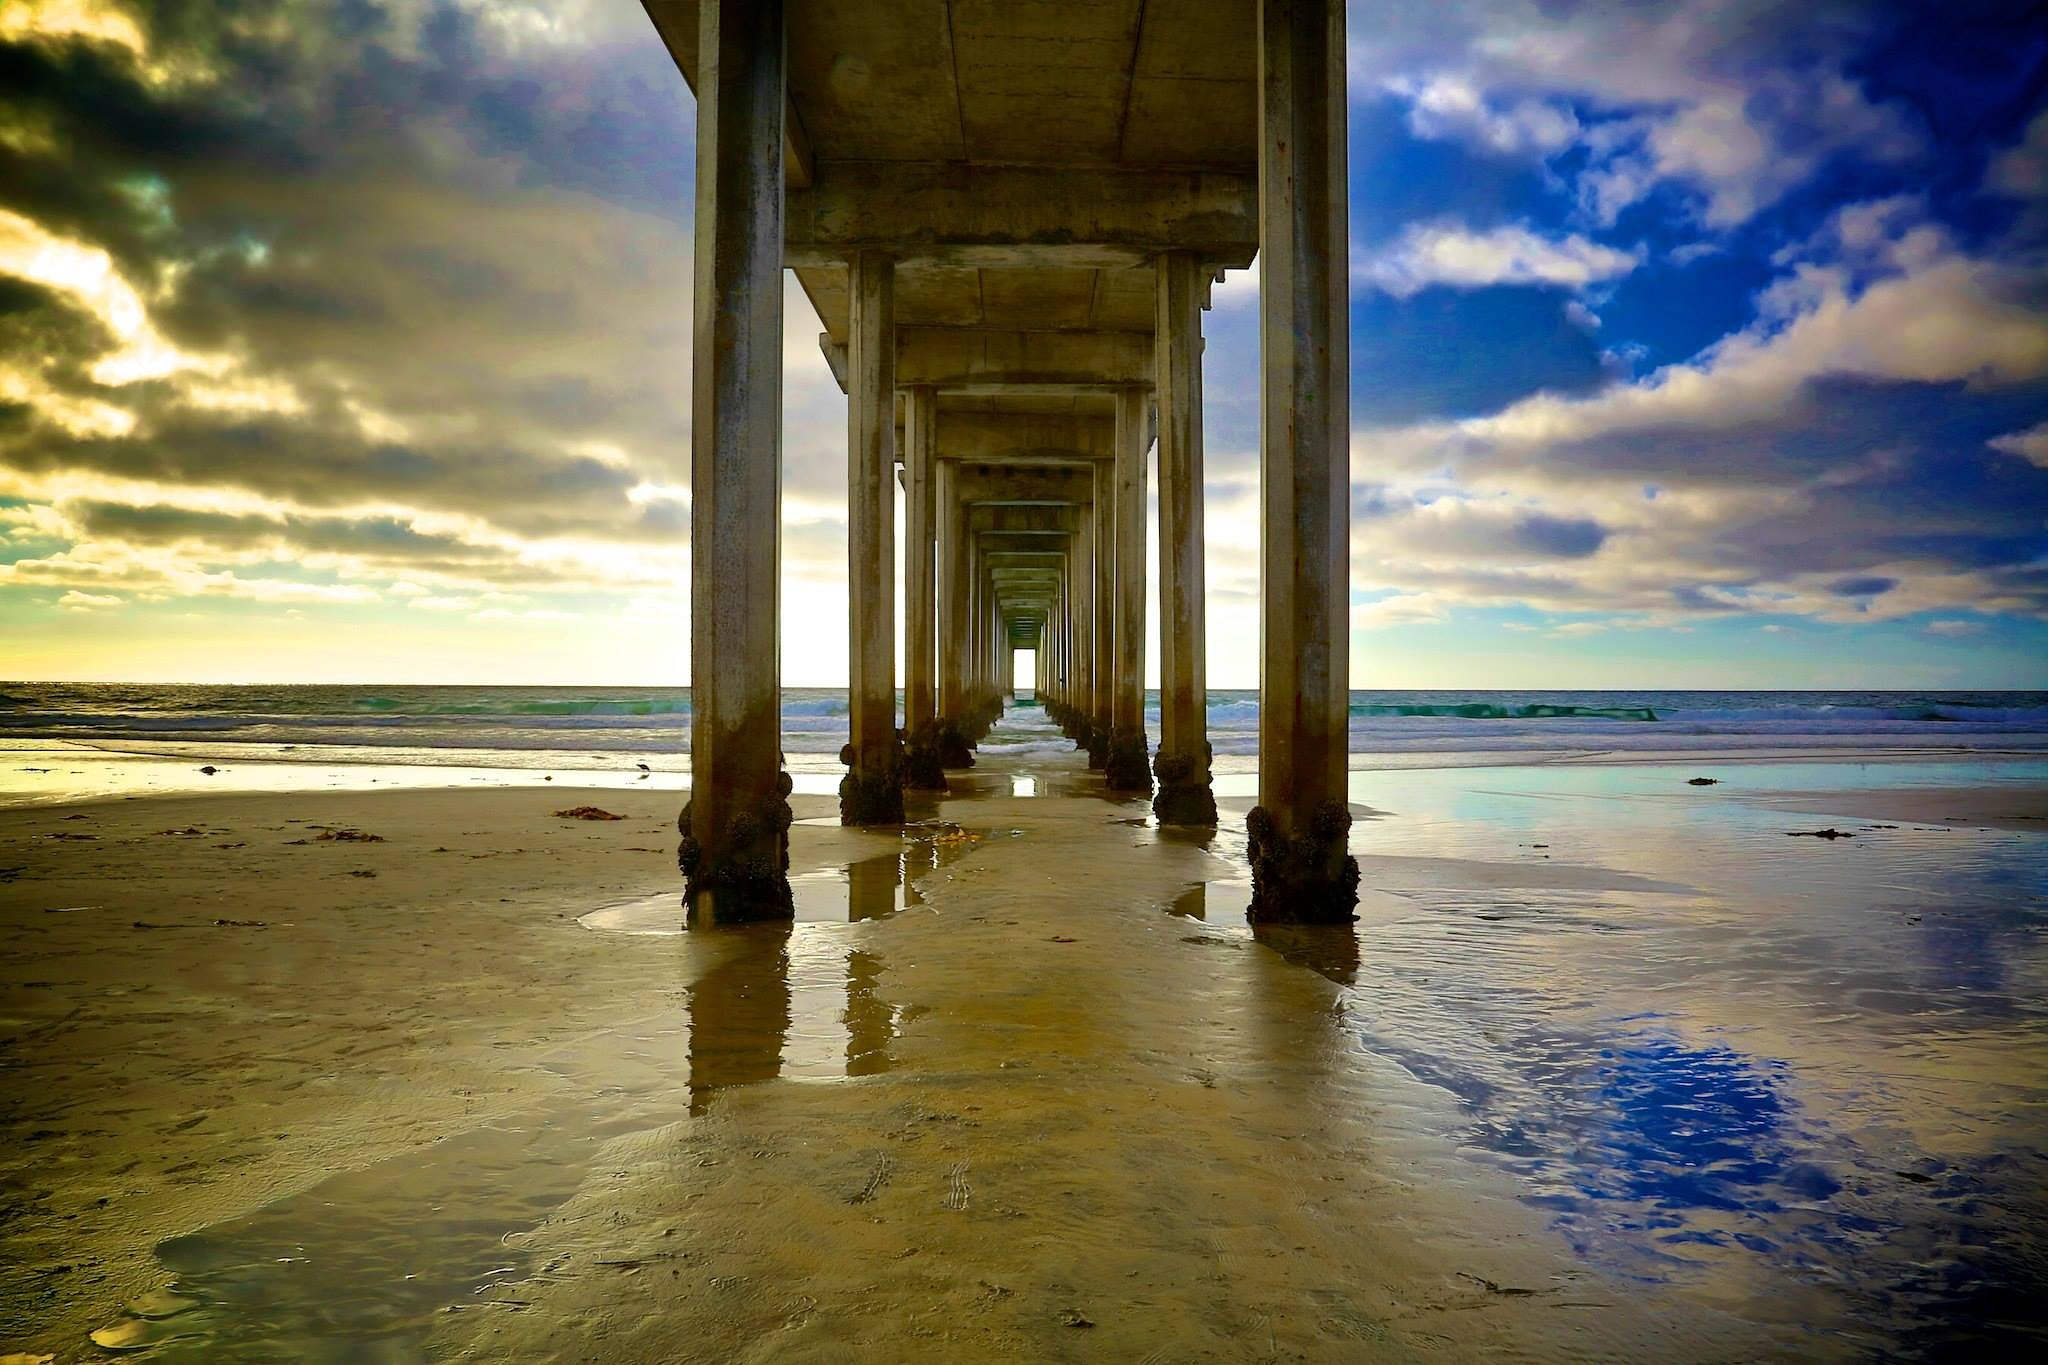 Scripps Pier by foretography